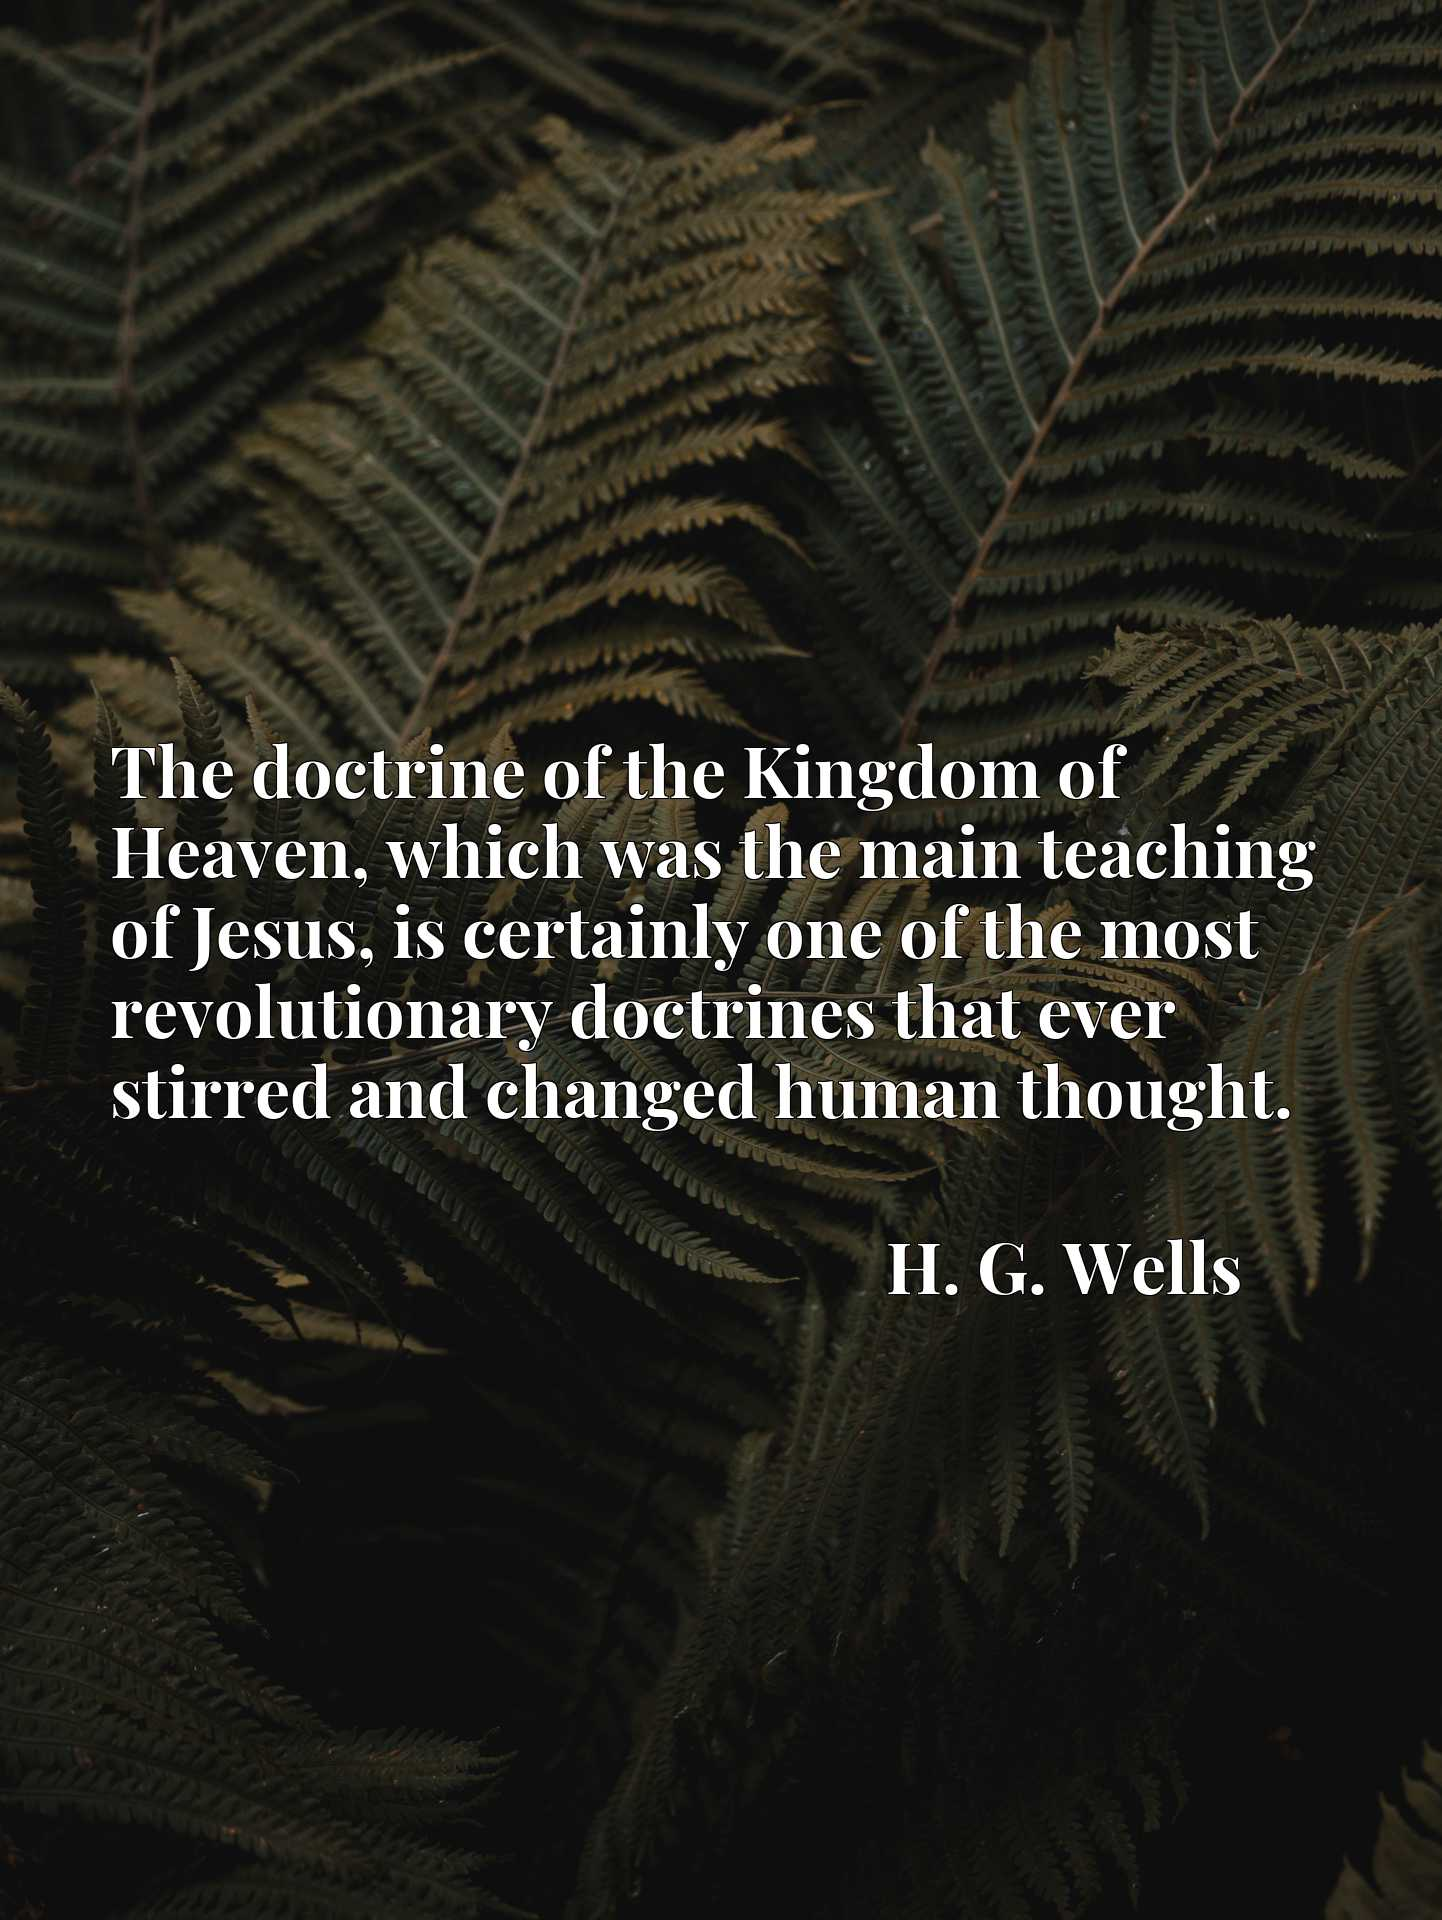 Quote Picture :The doctrine of the Kingdom of Heaven, which was the main teaching of Jesus, is certainly one of the most revolutionary doctrines that ever stirred and changed human thought.